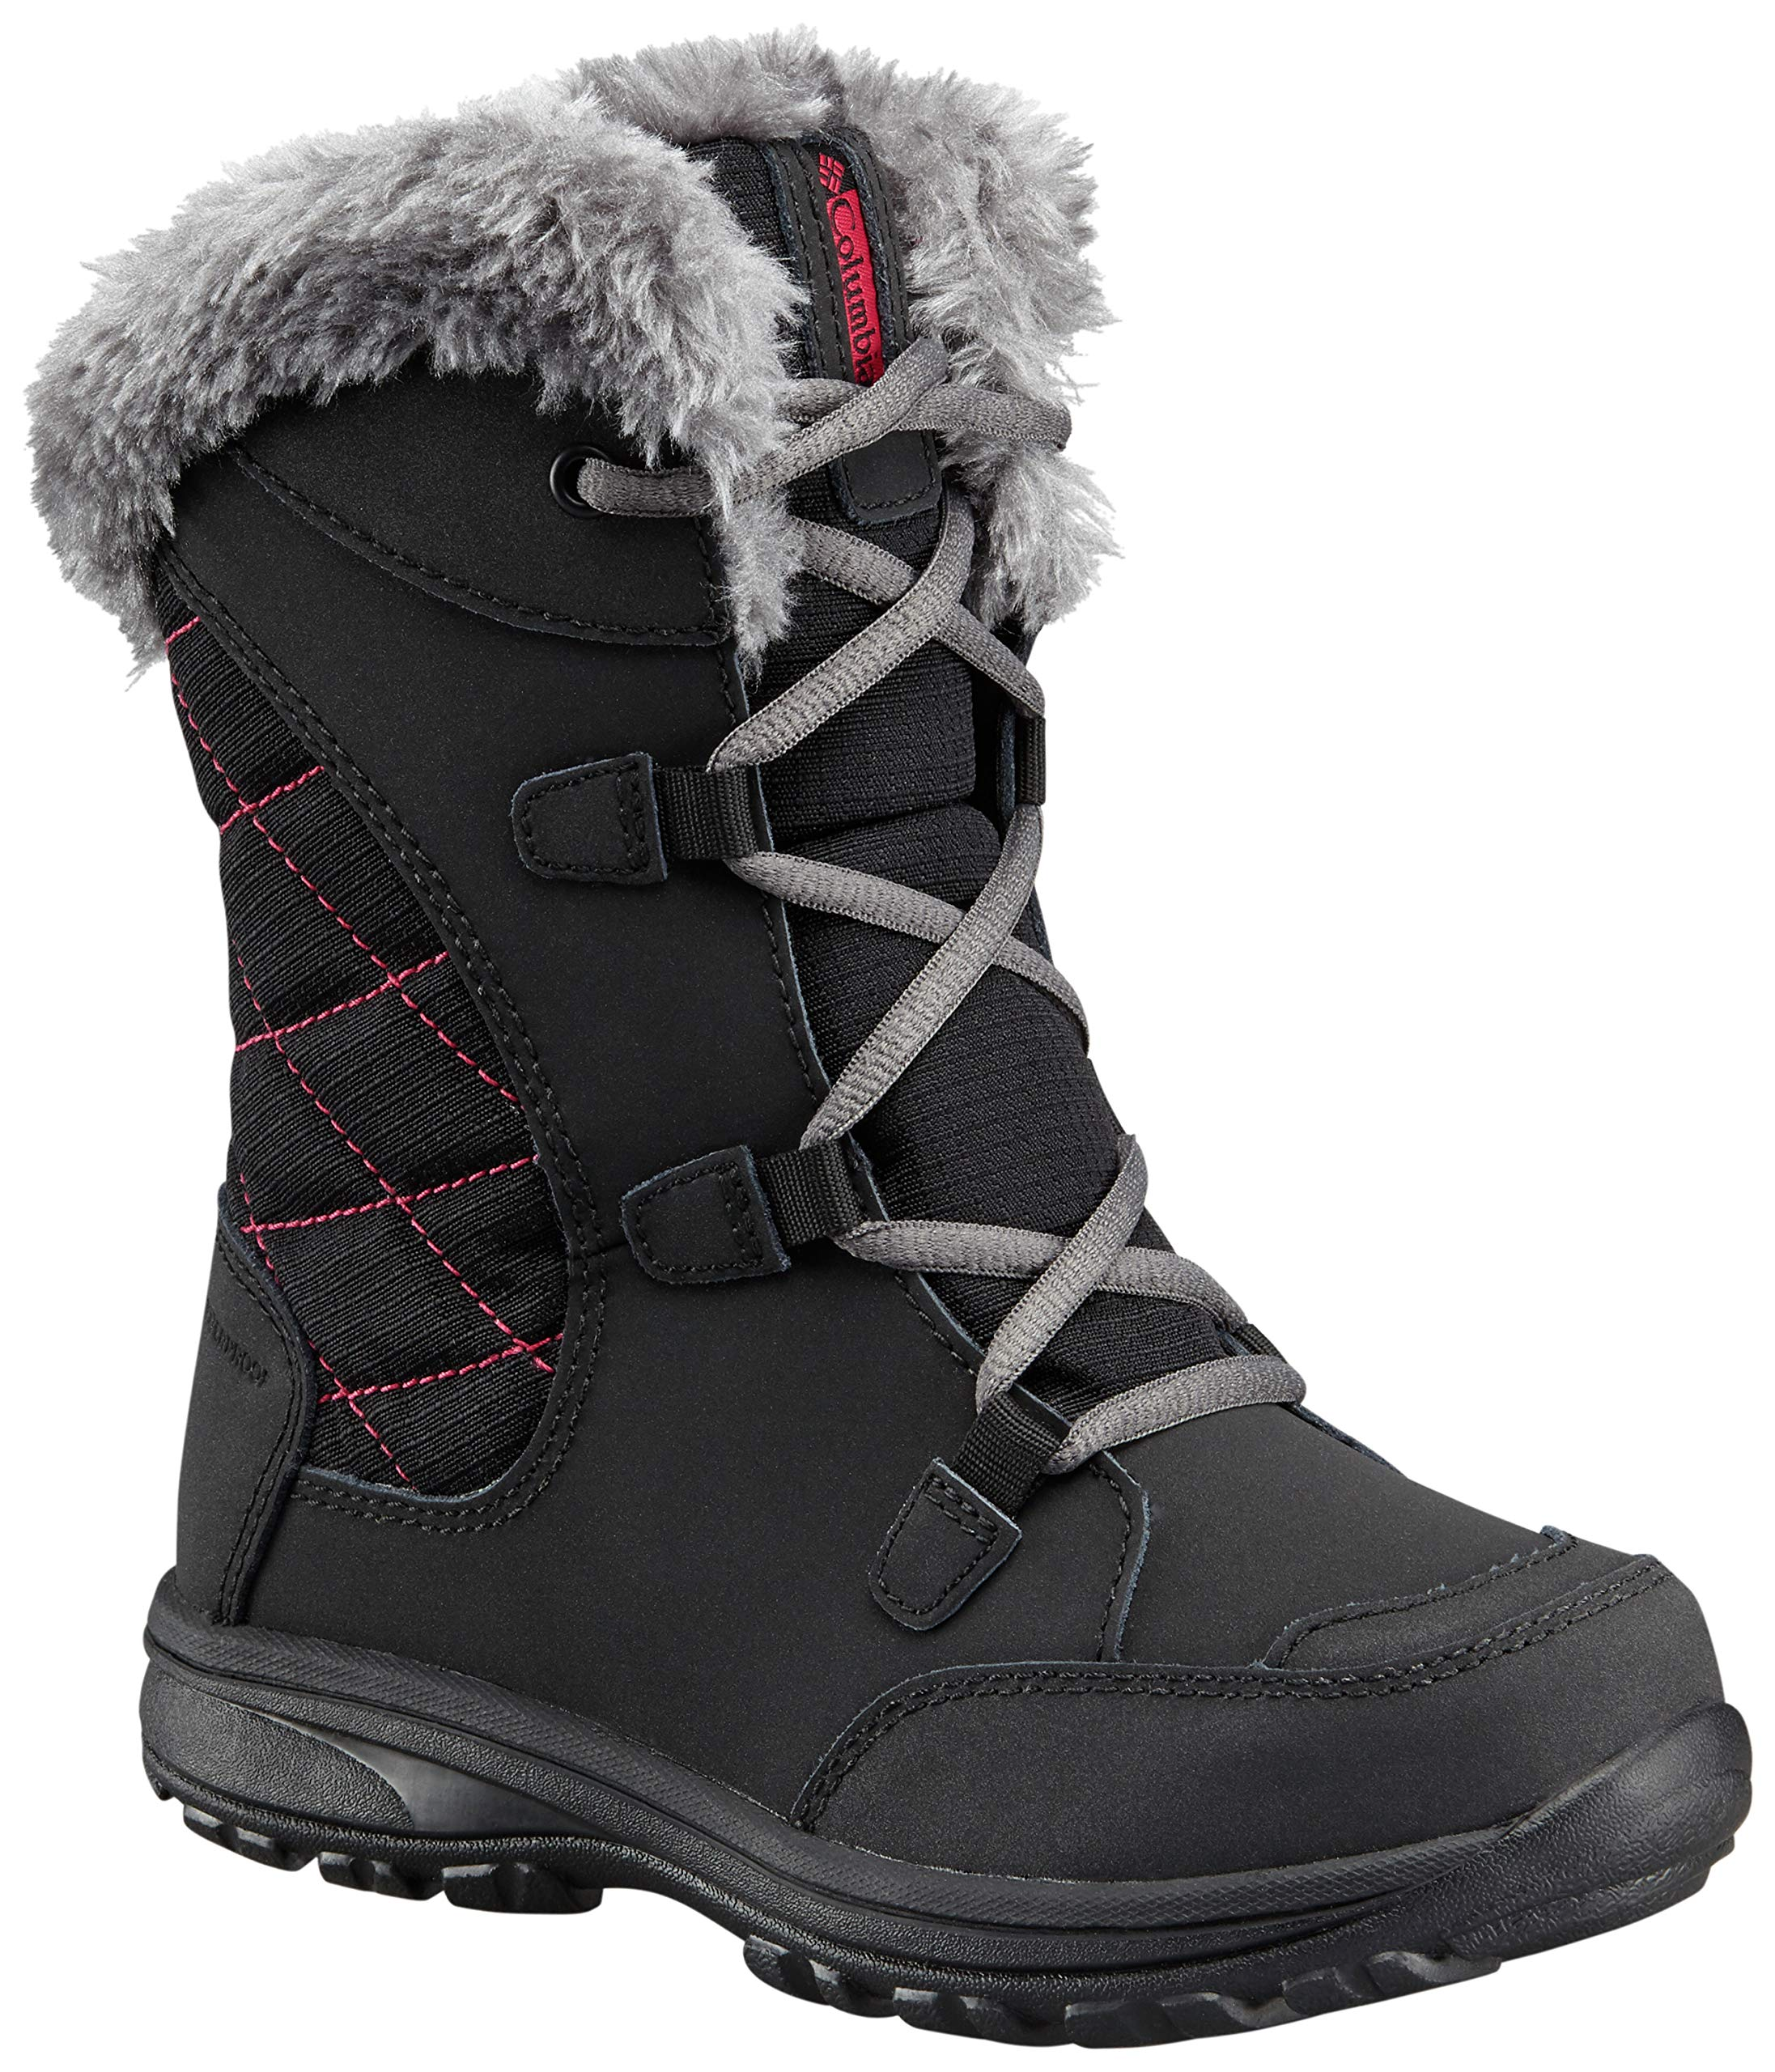 Columbia Youth Ice Maiden Lace Winter Boot (Little Kid/Big Kid), Black, 1 M US Little Kid by Columbia (Image #1)